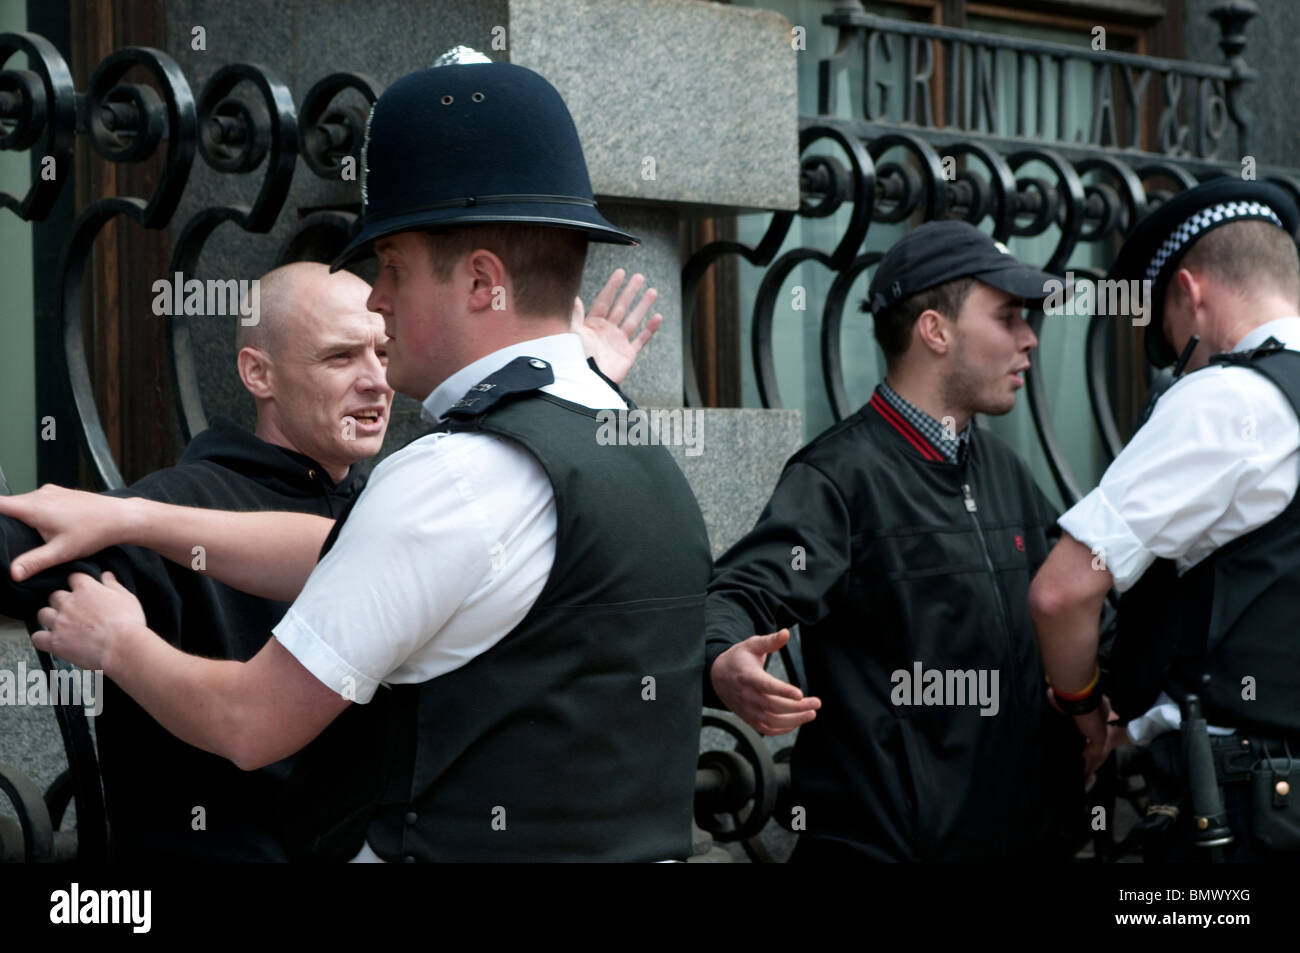 Police search members of English Defense League (LDF), Whitehall, London, UK, 20th June 2010 - Stock Image